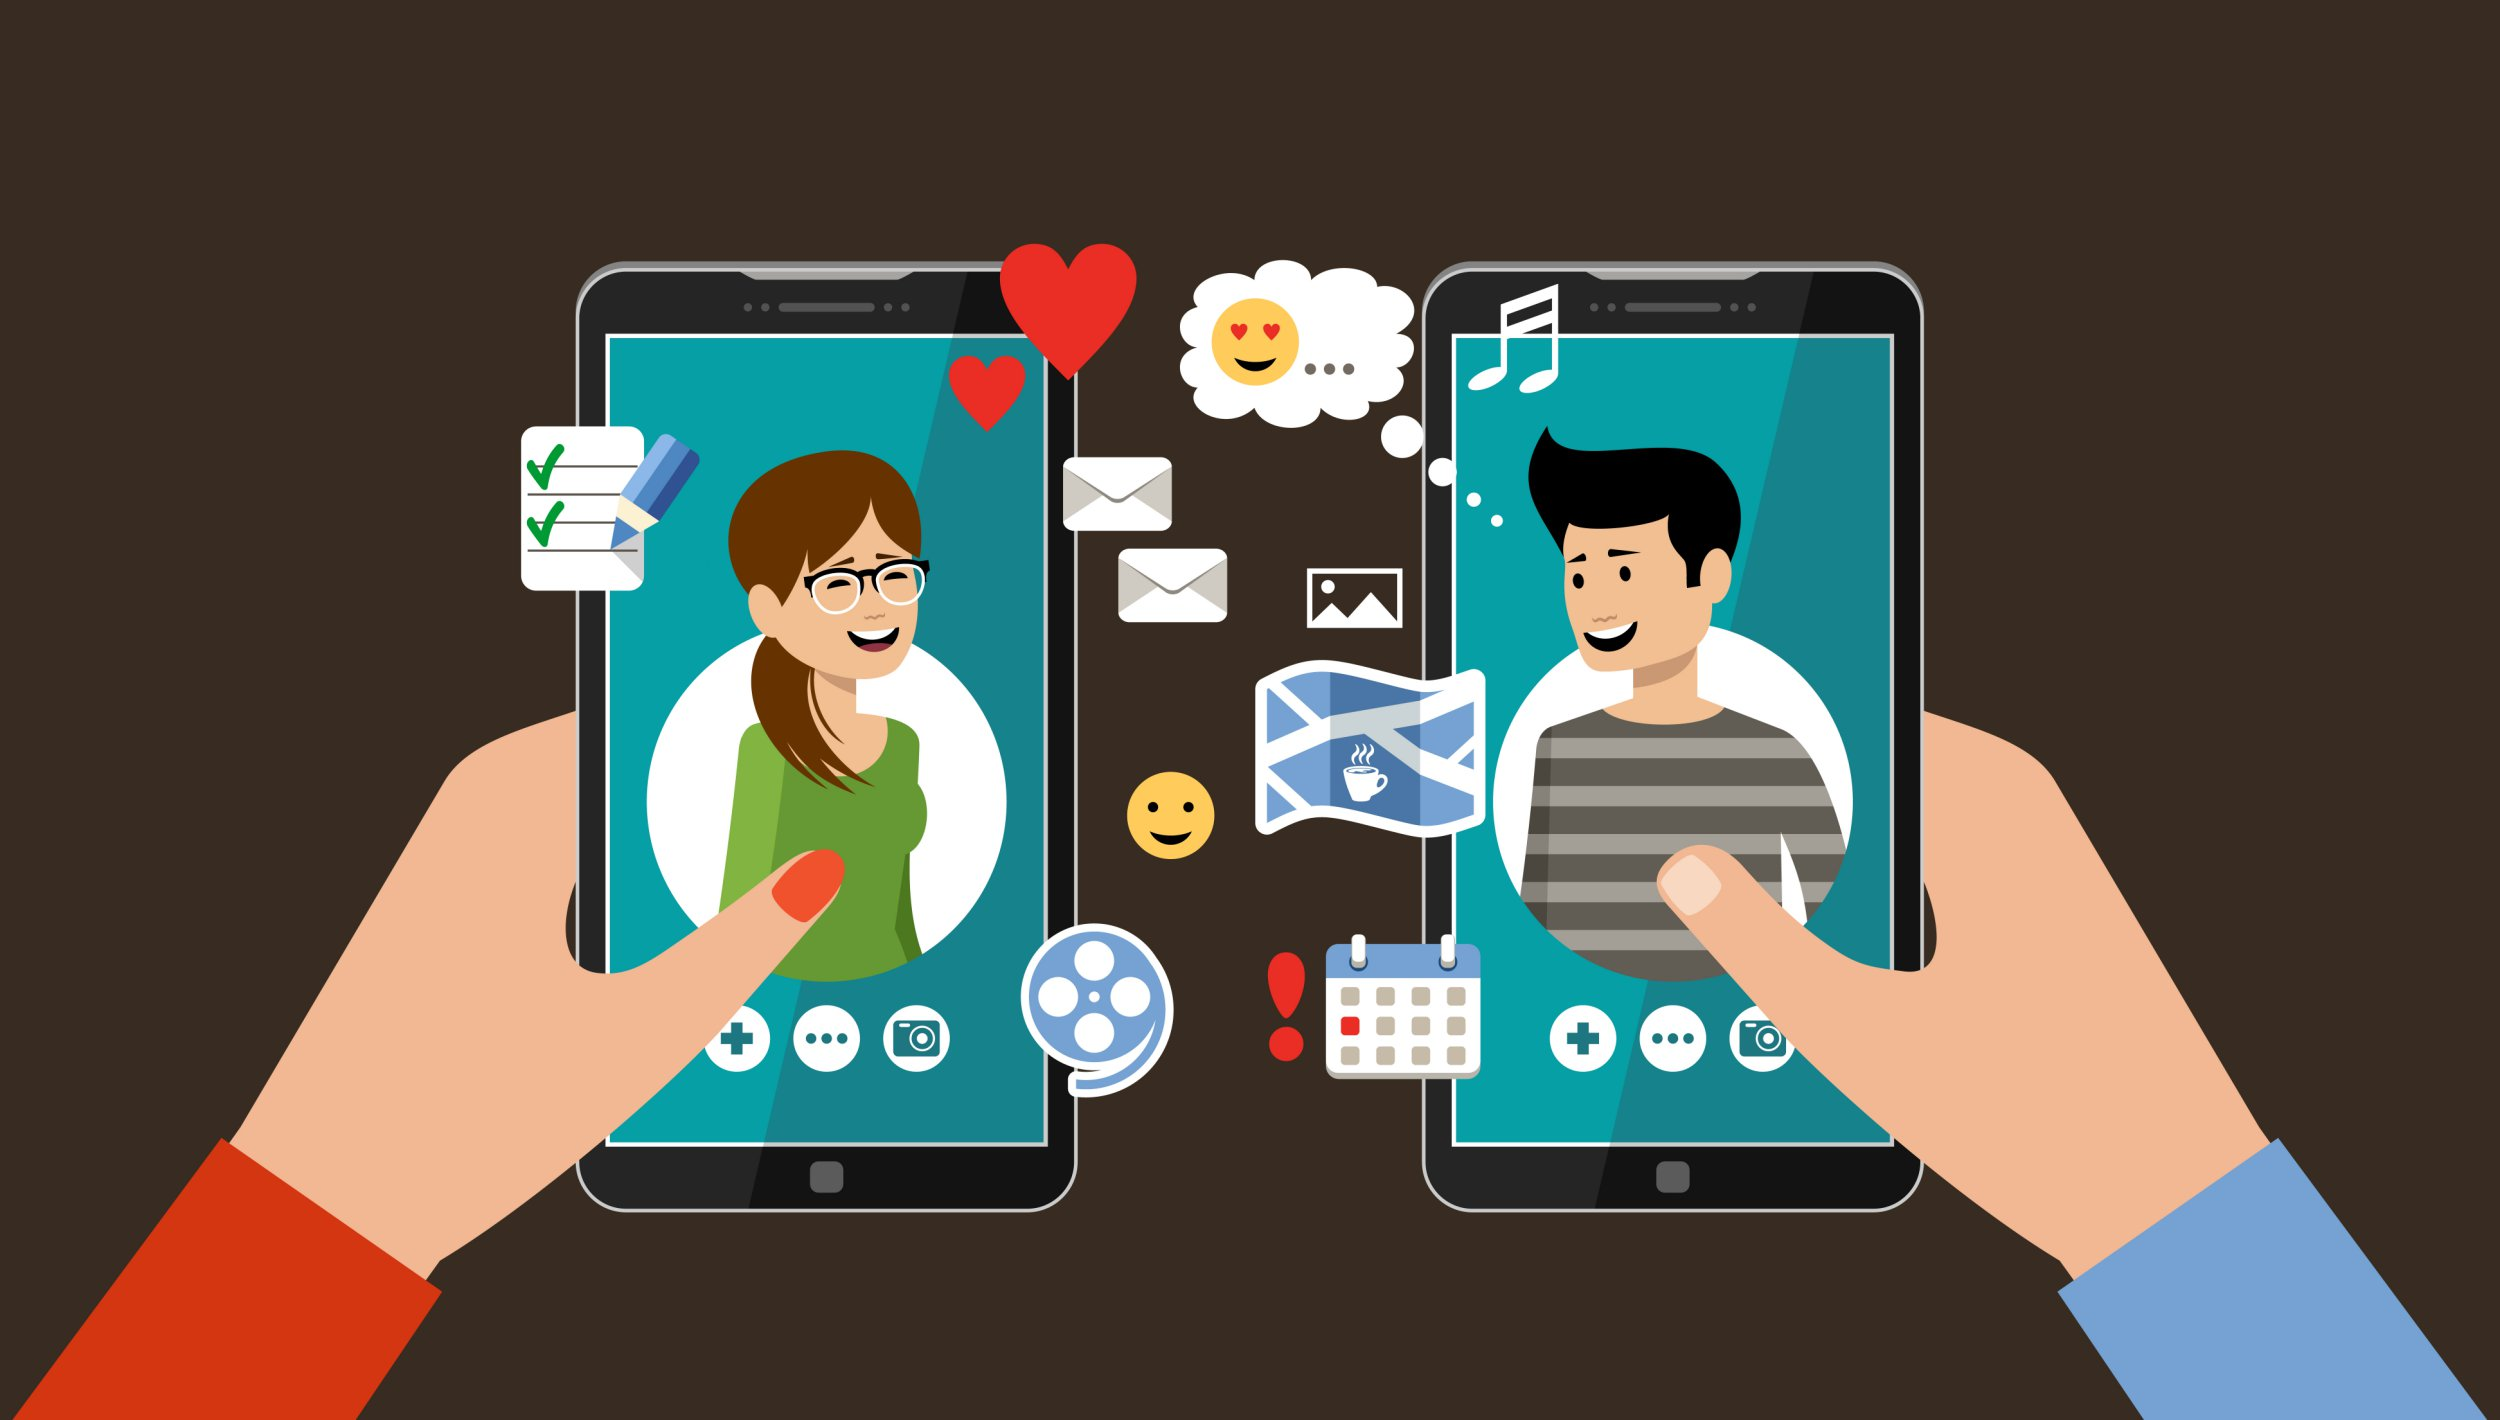 Could Socially be the app citydwellers have been waiting for?